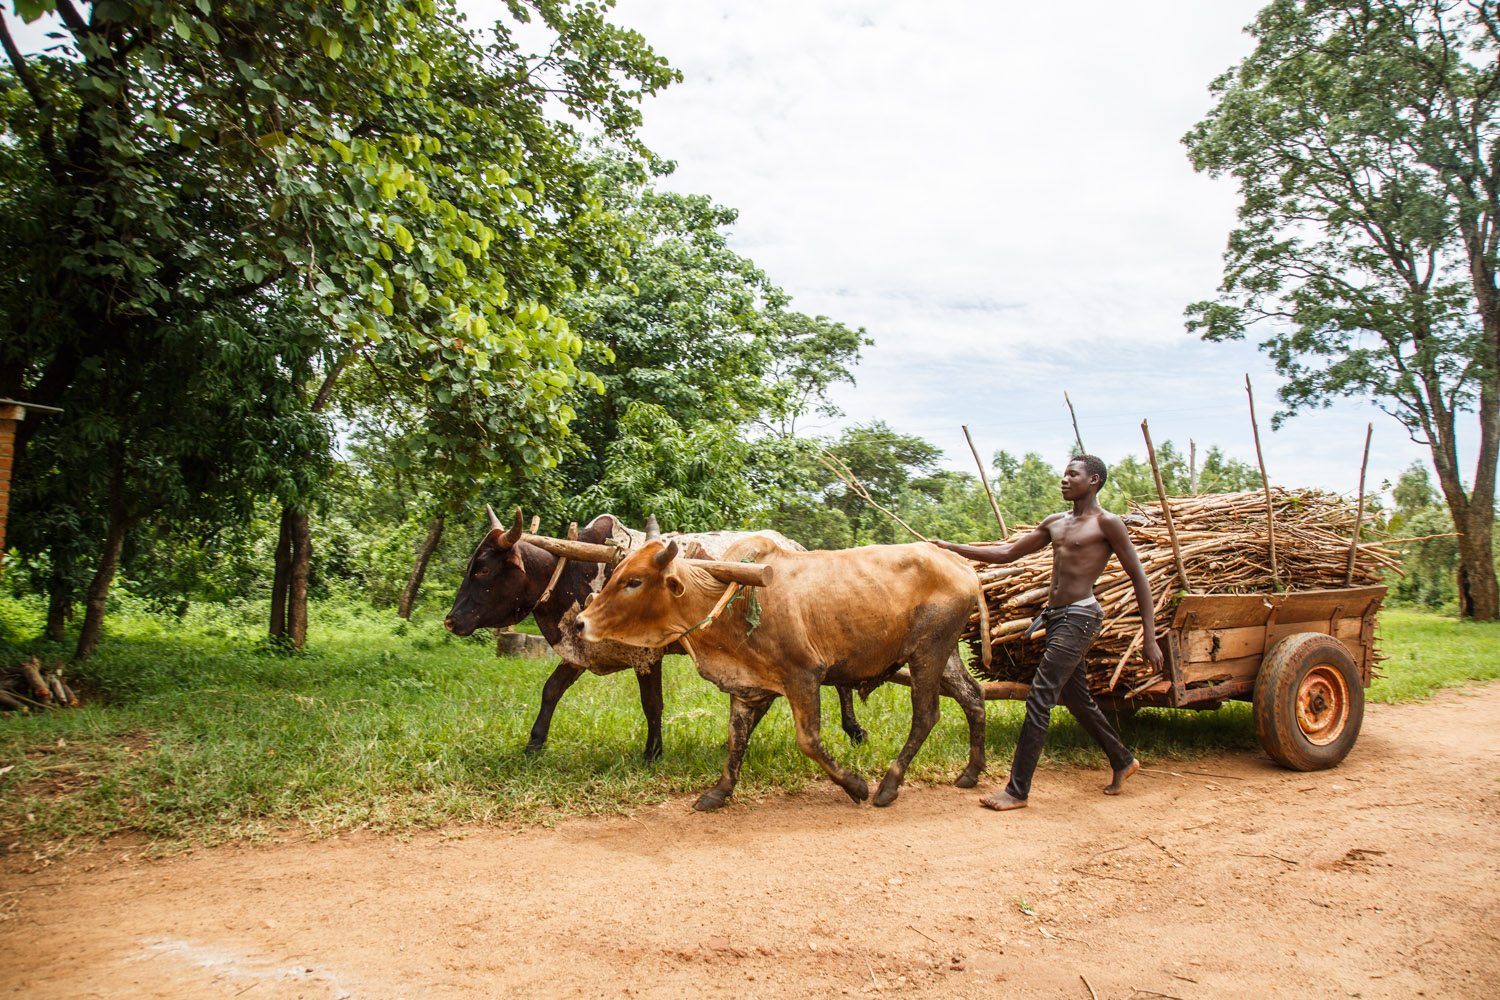 A man drives cattle pulling a cart full of firewood